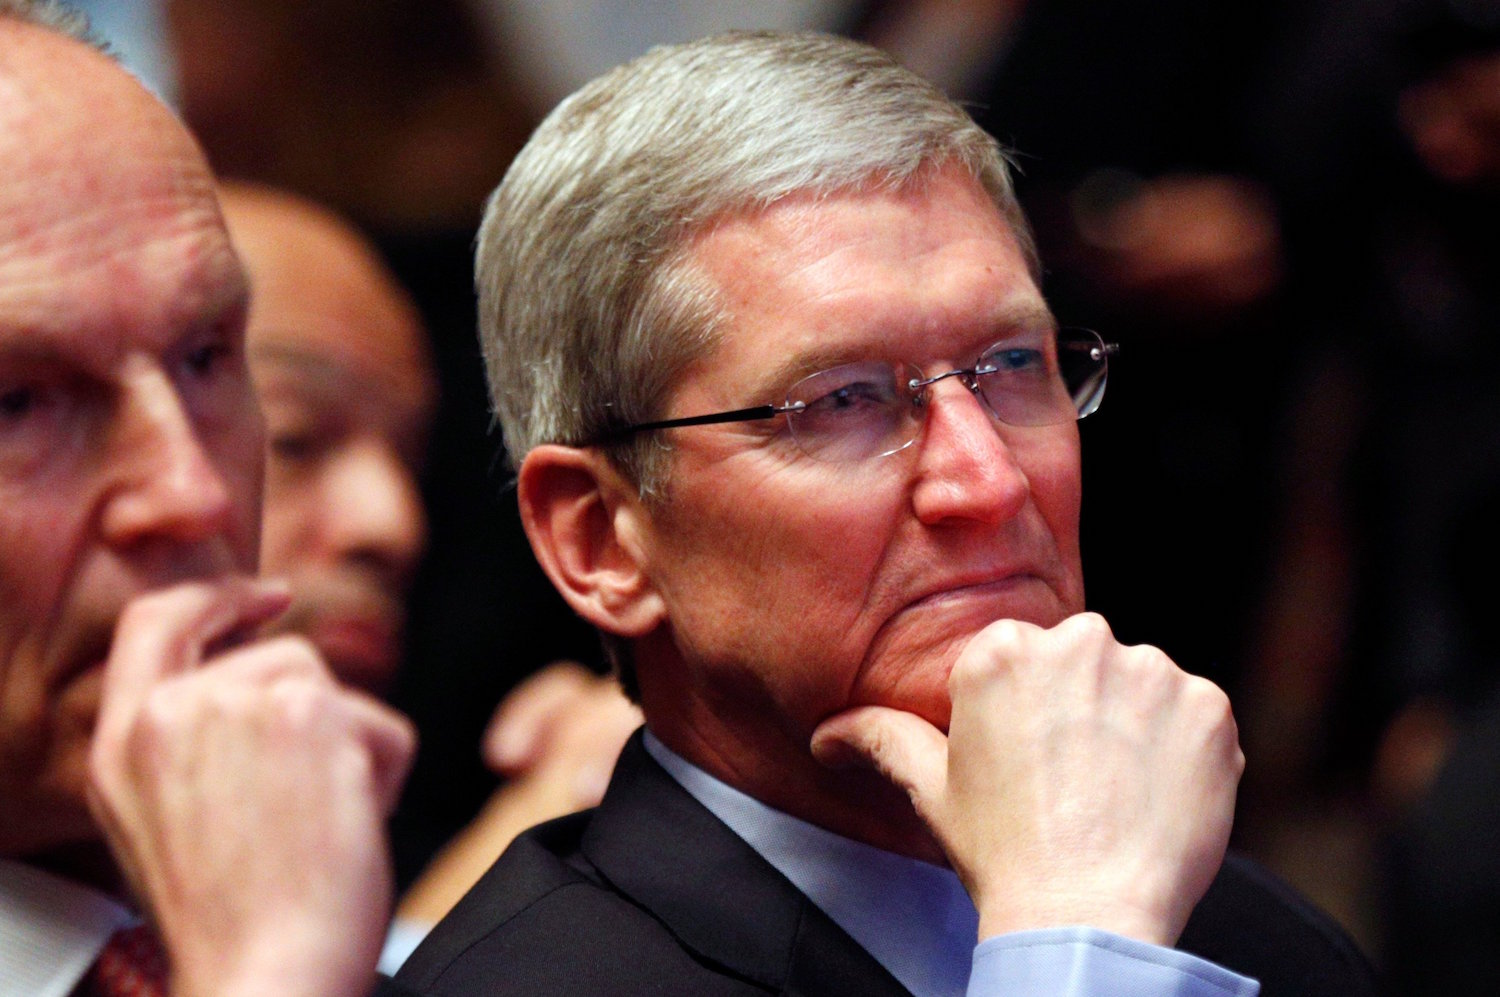 Tim cook attended a secret meeting of conspirators